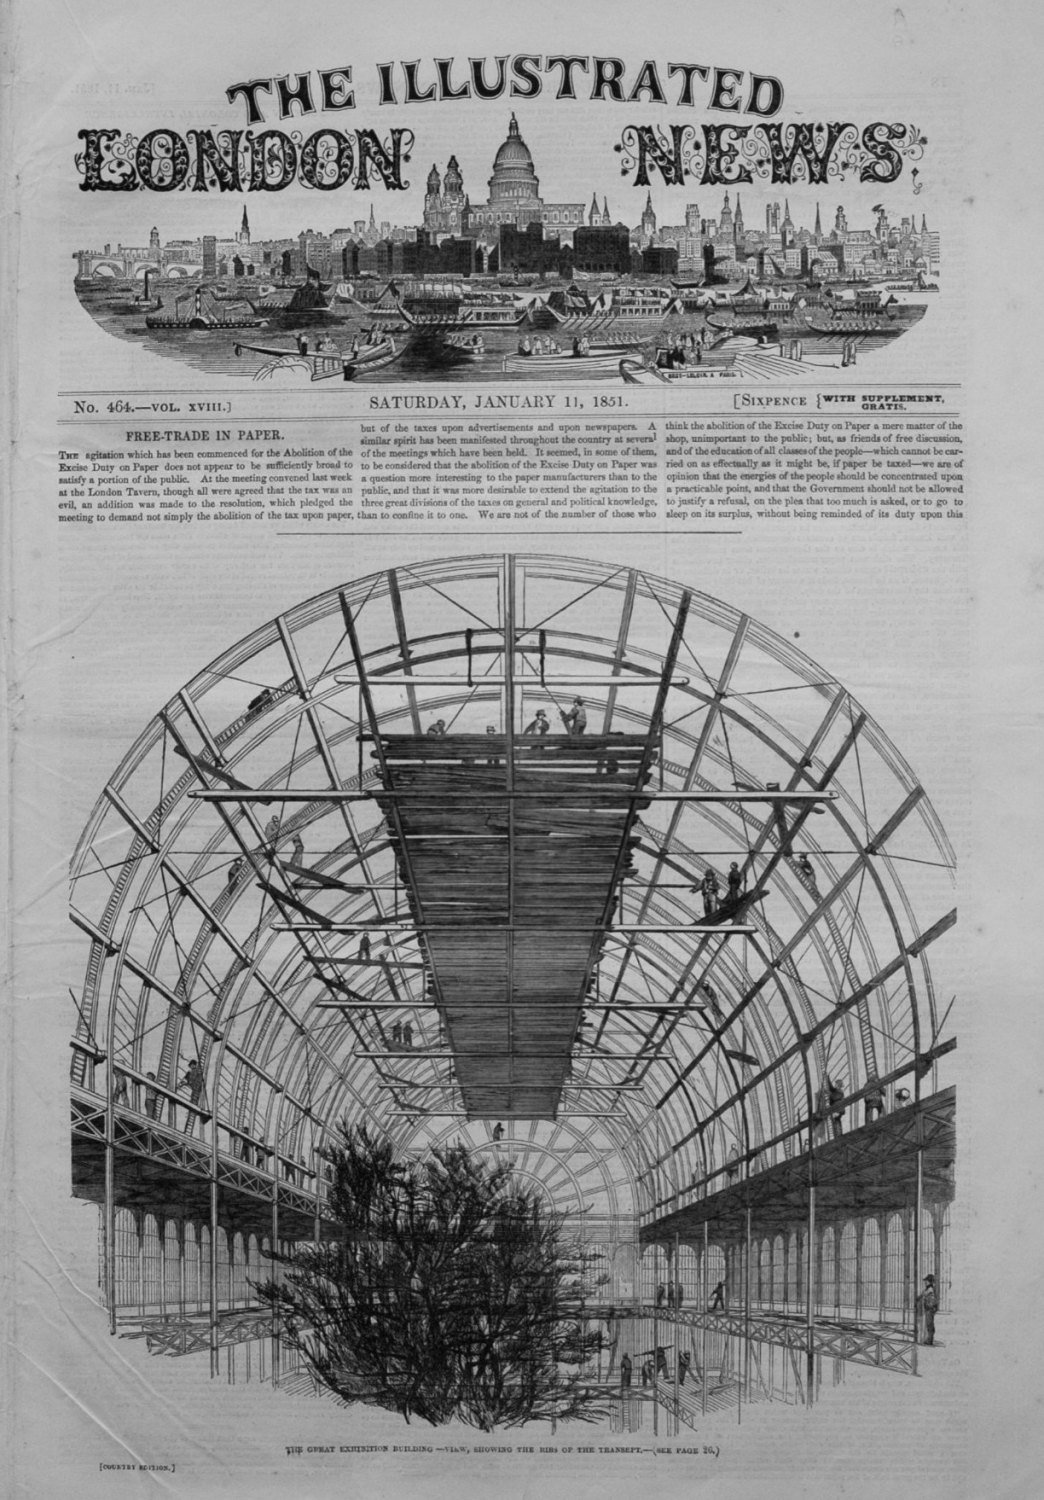 Illustrated London News January 11th 1851.